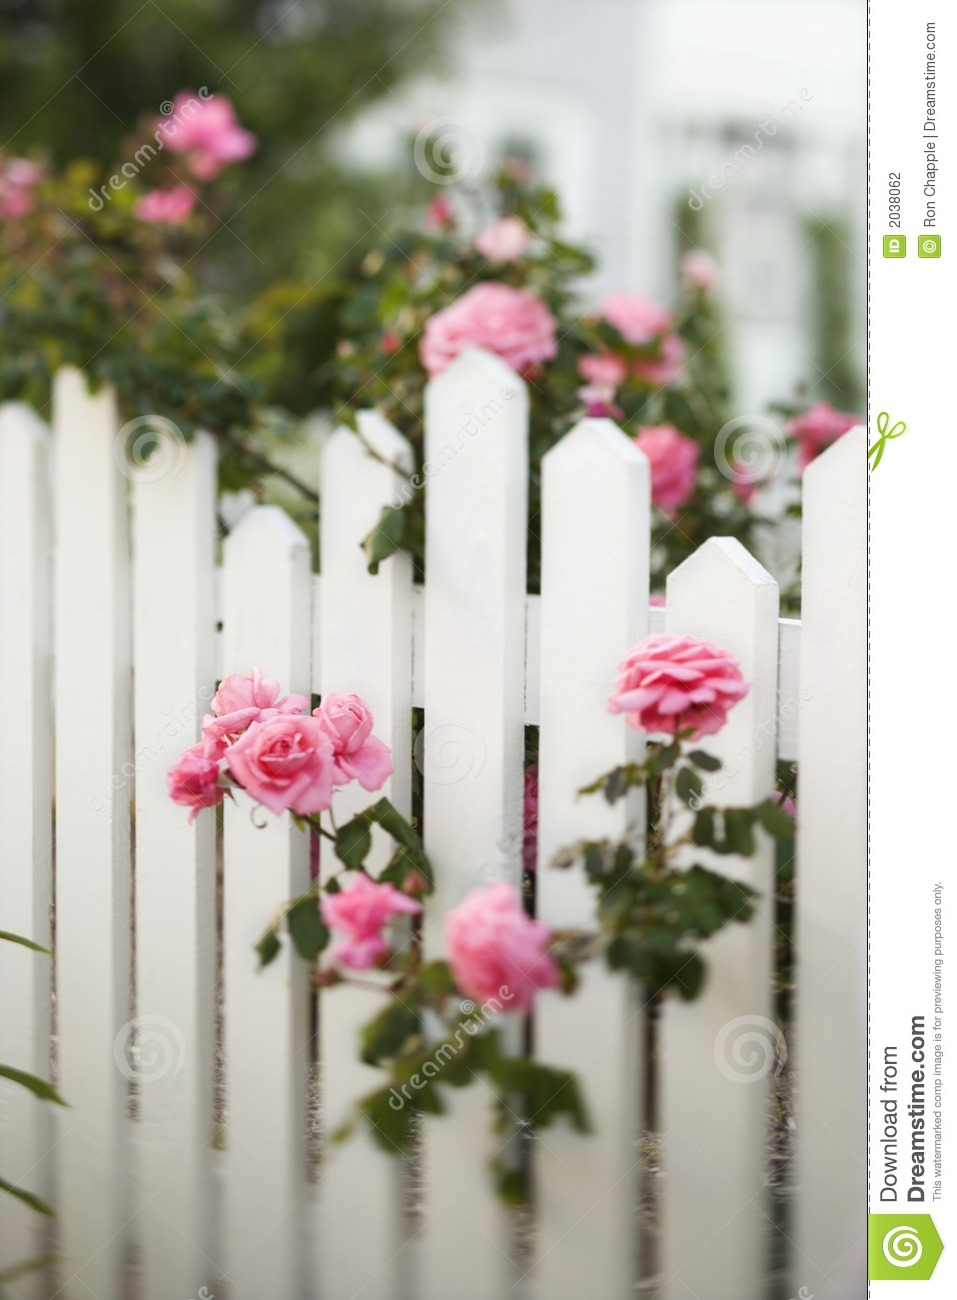 Roses growing over picket fence.